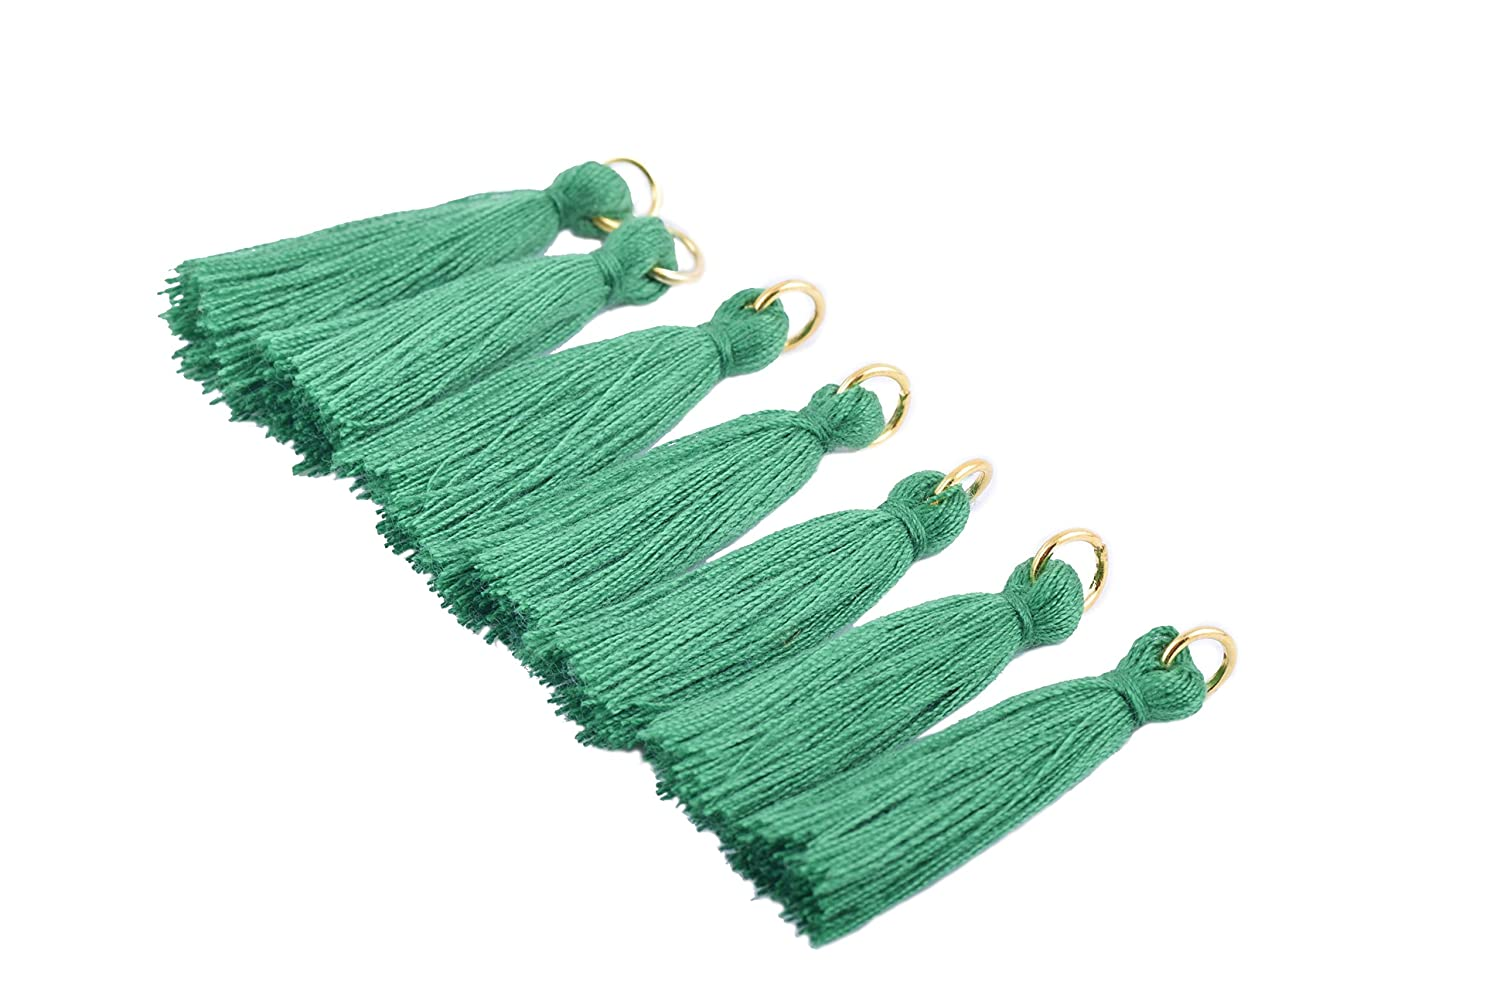 Soft Handmade Silky Tiny Craft Tassels with Golden Jump Ring for DIY Projects KONMAY 50PCS 1.4 3.5cm Teal